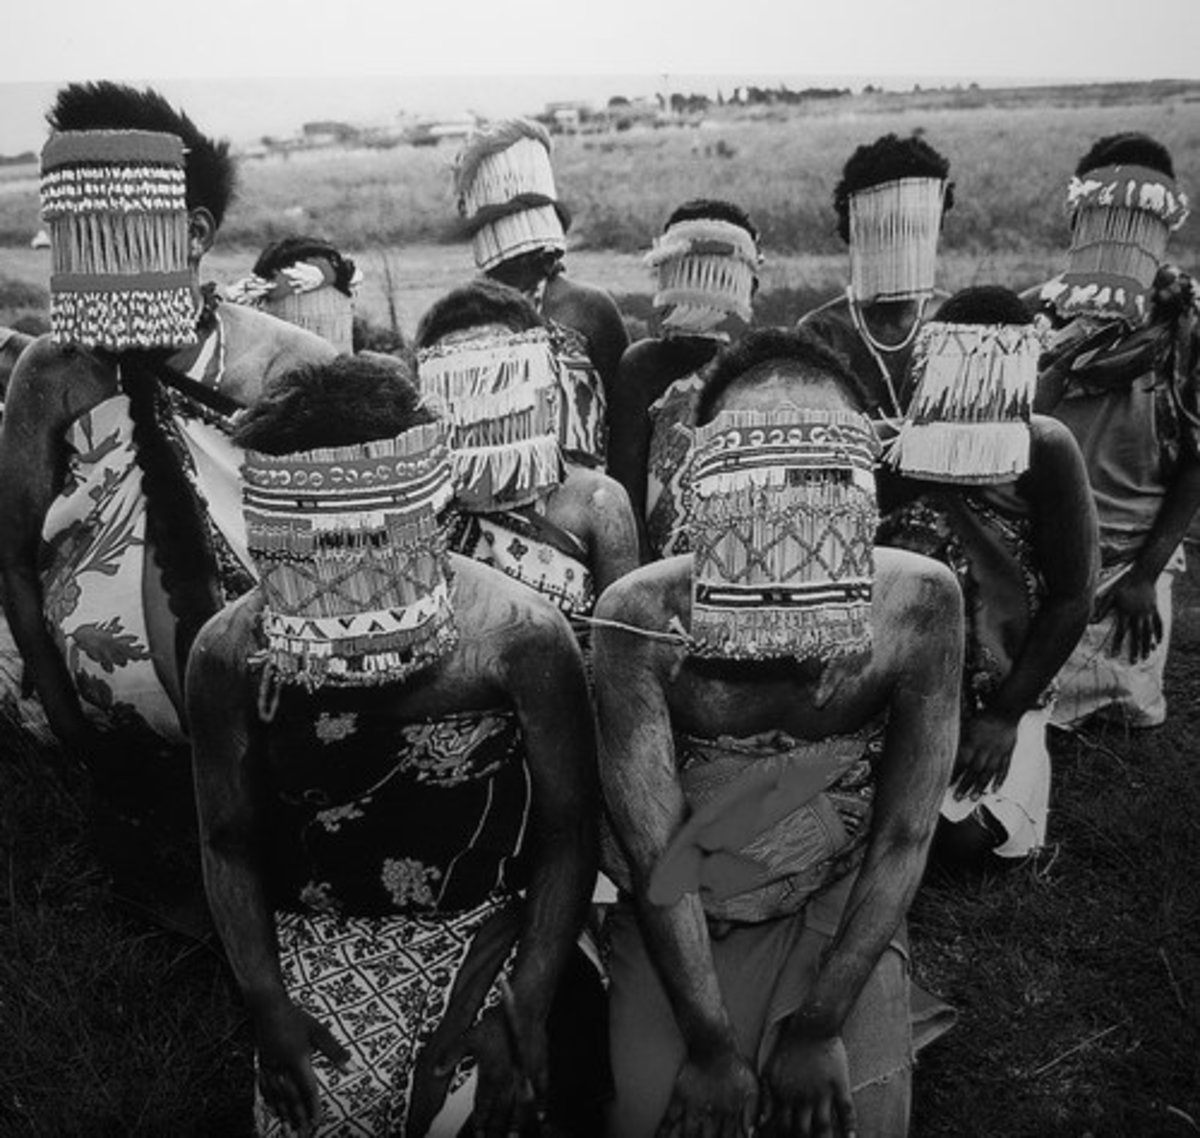 """Sotho girls' initiation known as """"bale"""" shown wearing masks and goatskin skits"""